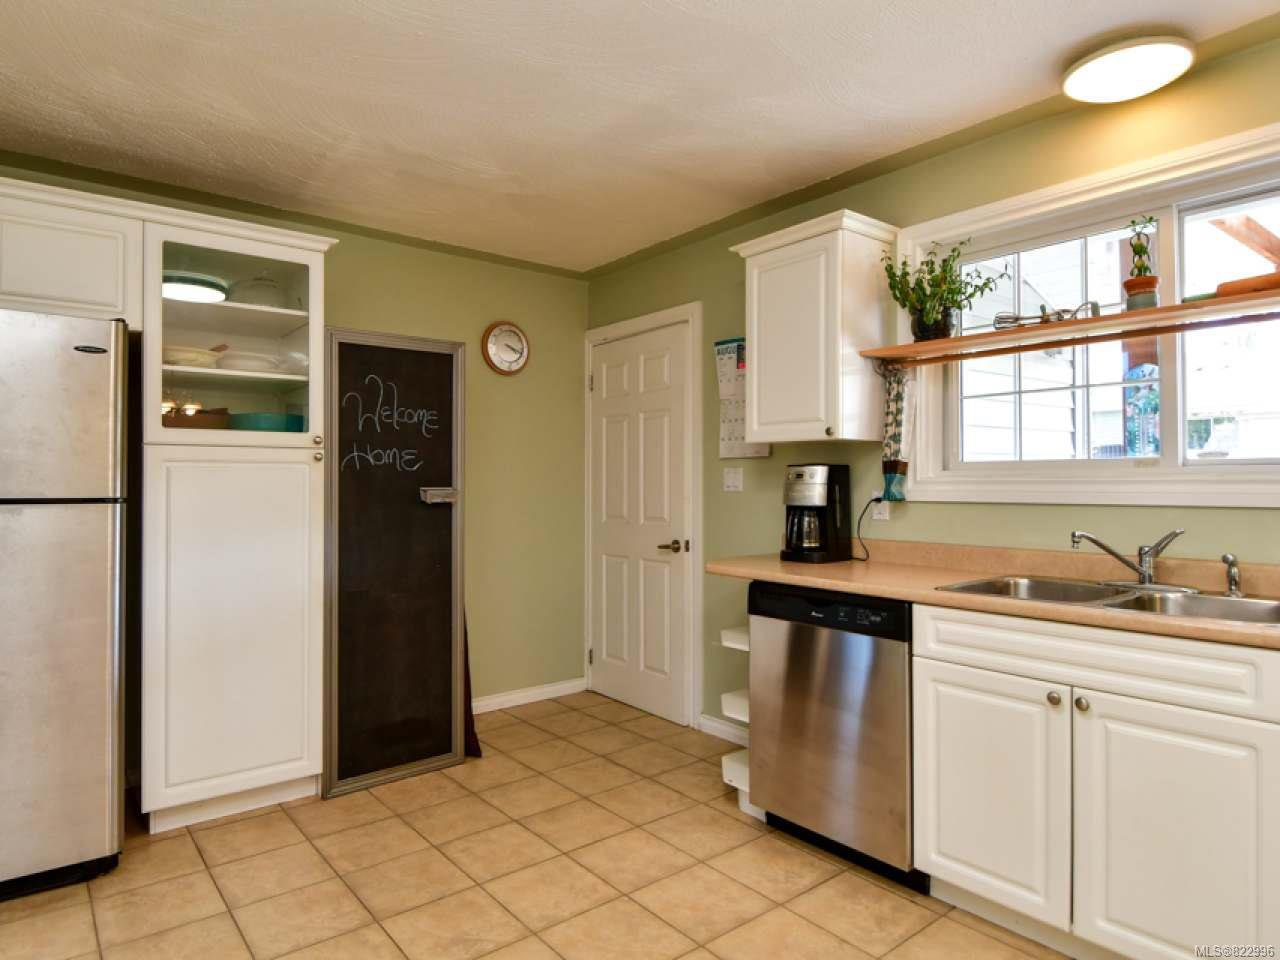 Photo 5: Photos: 691 Holm Rd in CAMPBELL RIVER: CR Willow Point House for sale (Campbell River)  : MLS®# 822996